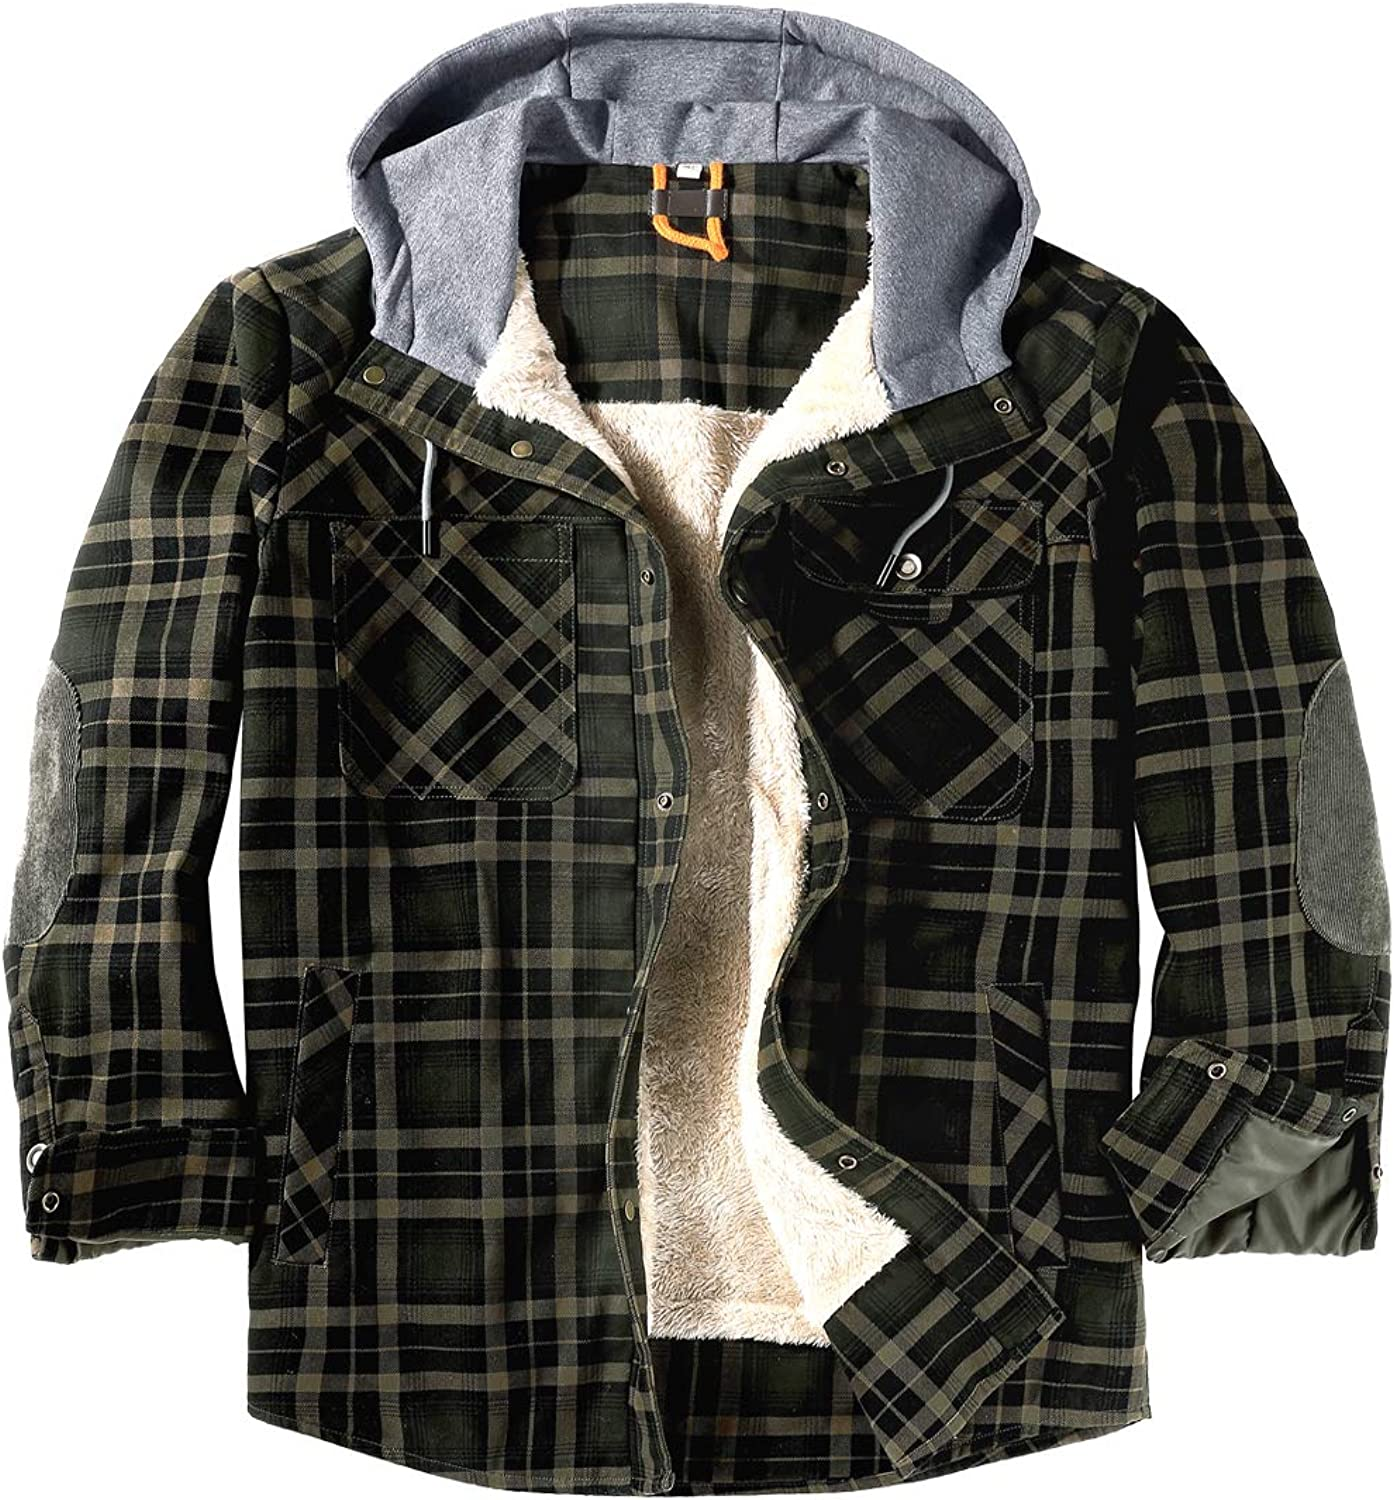 EUSMTD Mens Outdoor Casual Long Sleeve Thick Corduroy Plaid Shirt Jacket with Hood